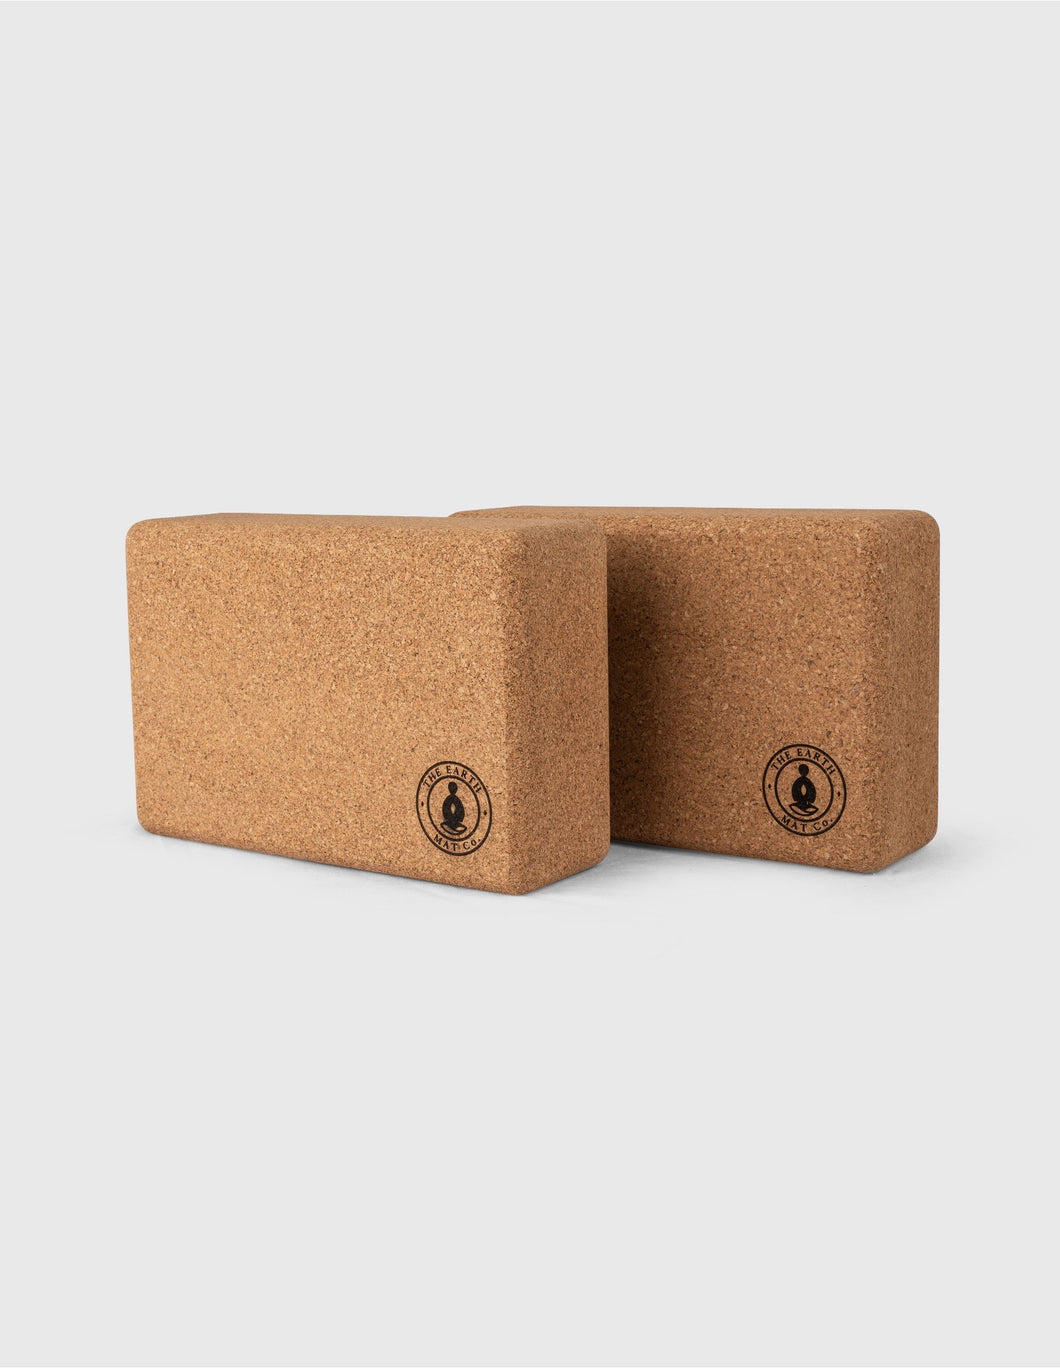 100% Cork Yoga Block set